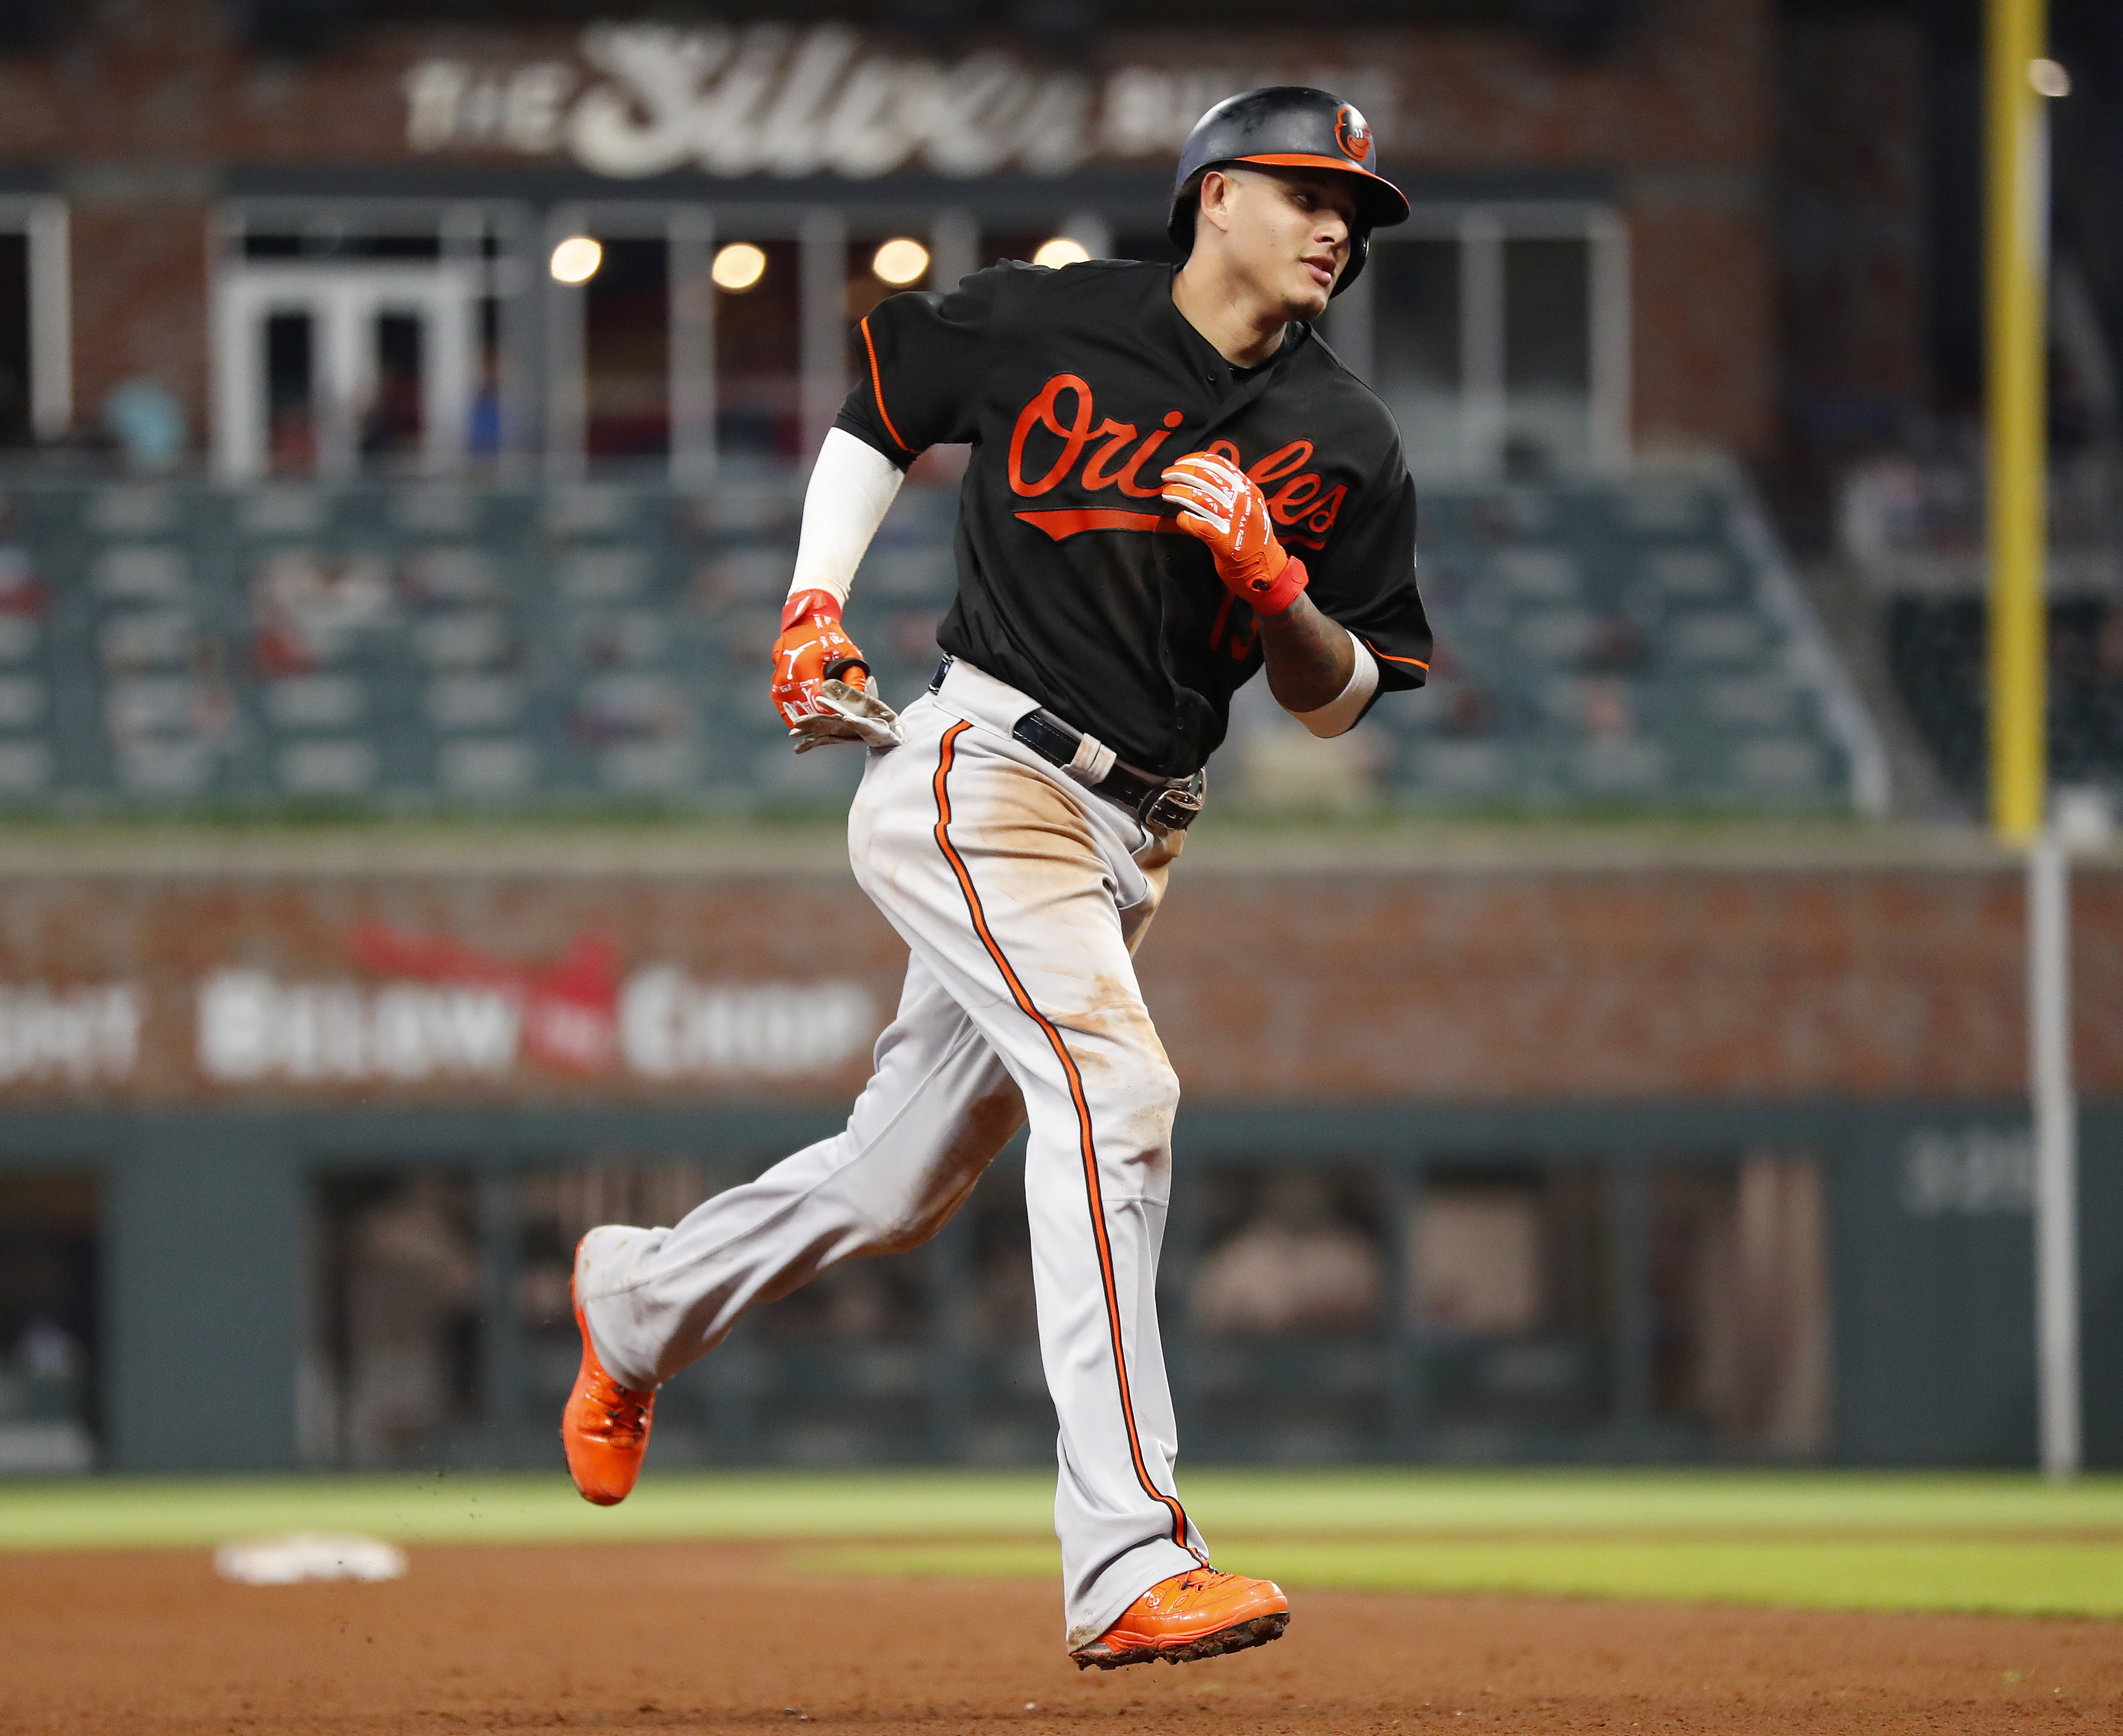 Shortstop Manny Machado and his Baltimore Orioles will be at Citizens Bank Park the next two days. The Phillies would love to see him return one day wearing red pinstripes.